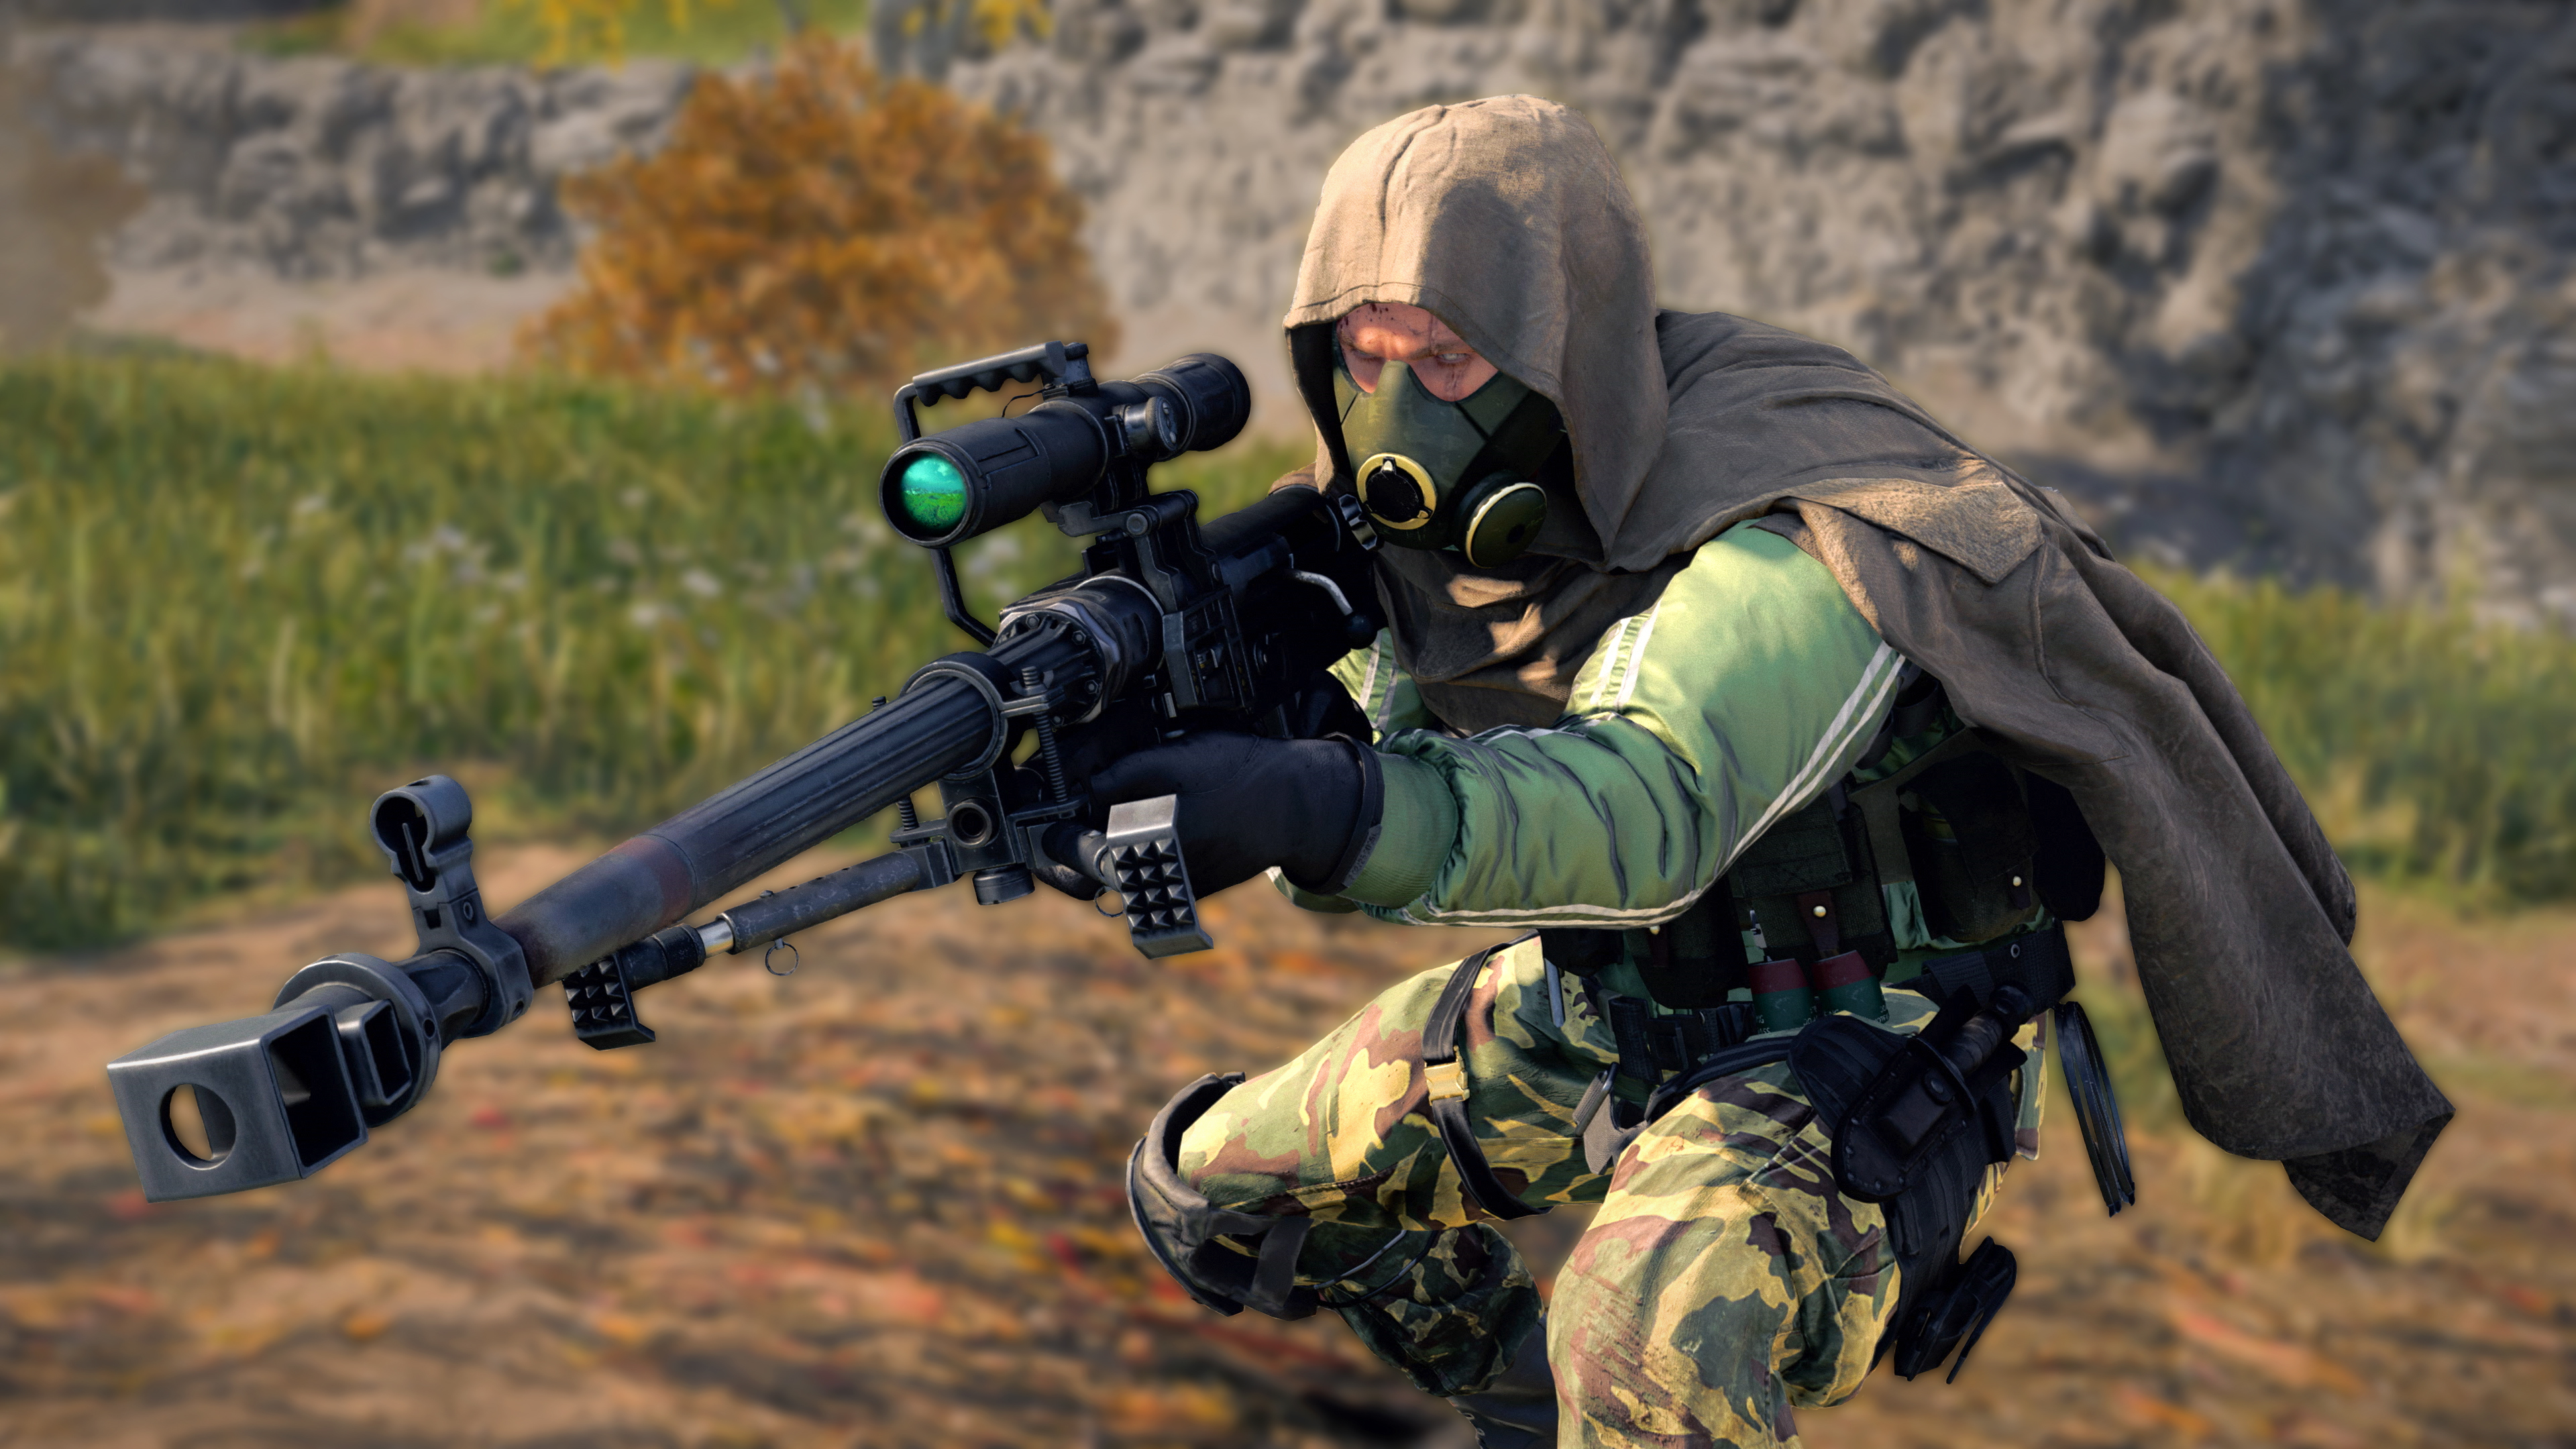 A Call of Duty: Black Ops Cold War player aims the ZRG 20mm sniper rifle